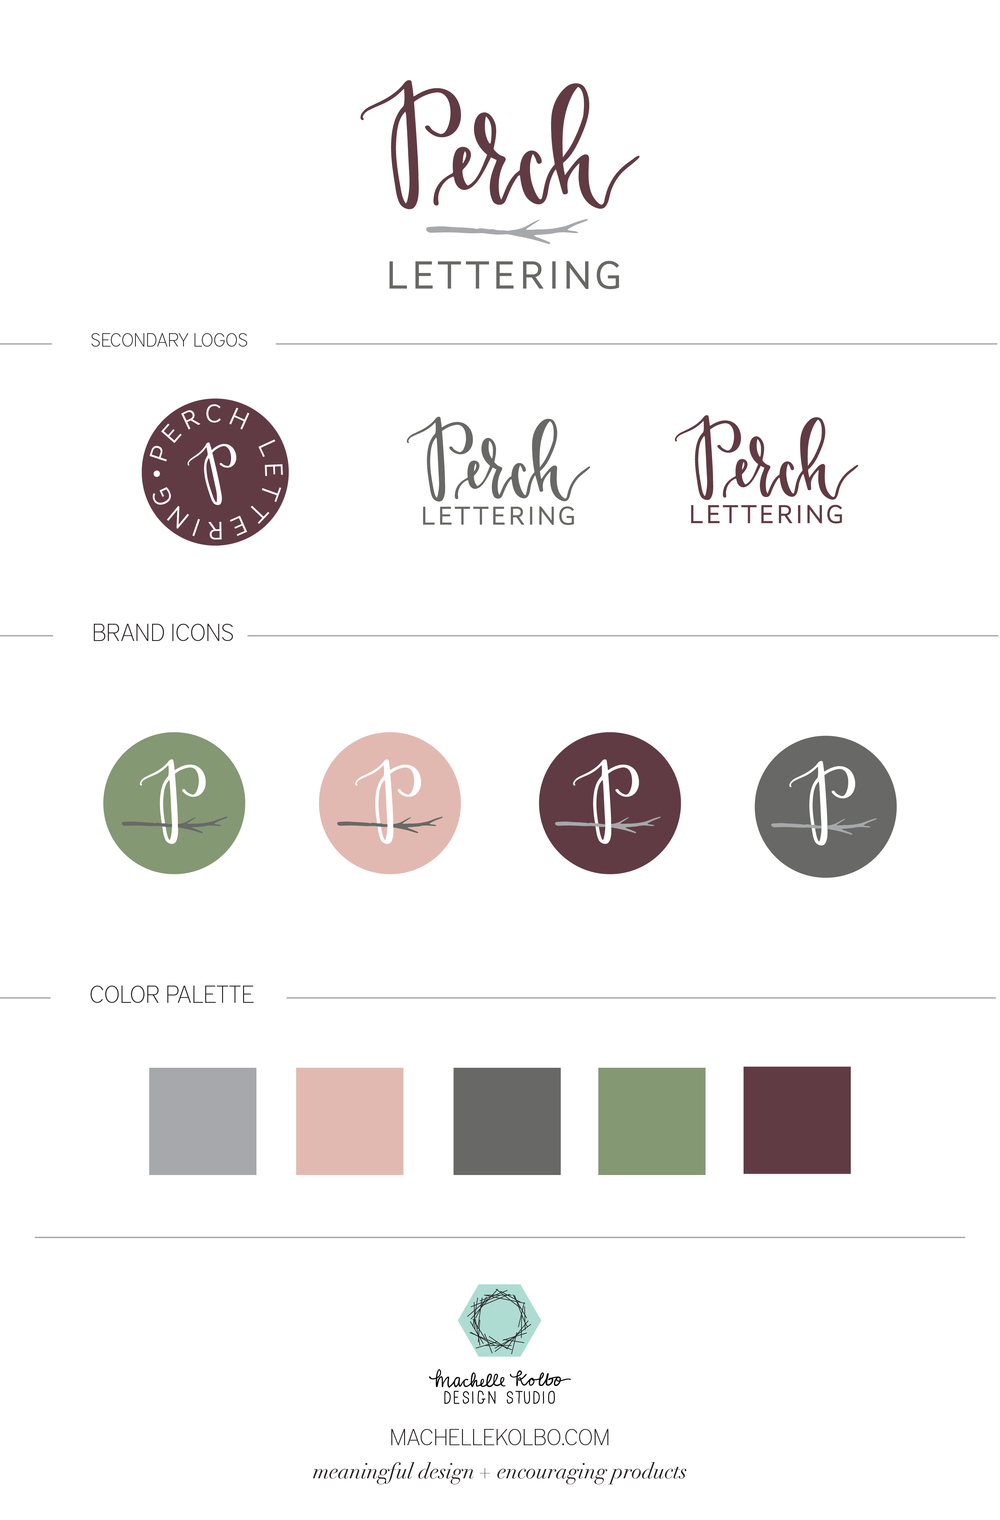 Perch Lettering Brand Style Guide | Machelle Kolbo Design Studio